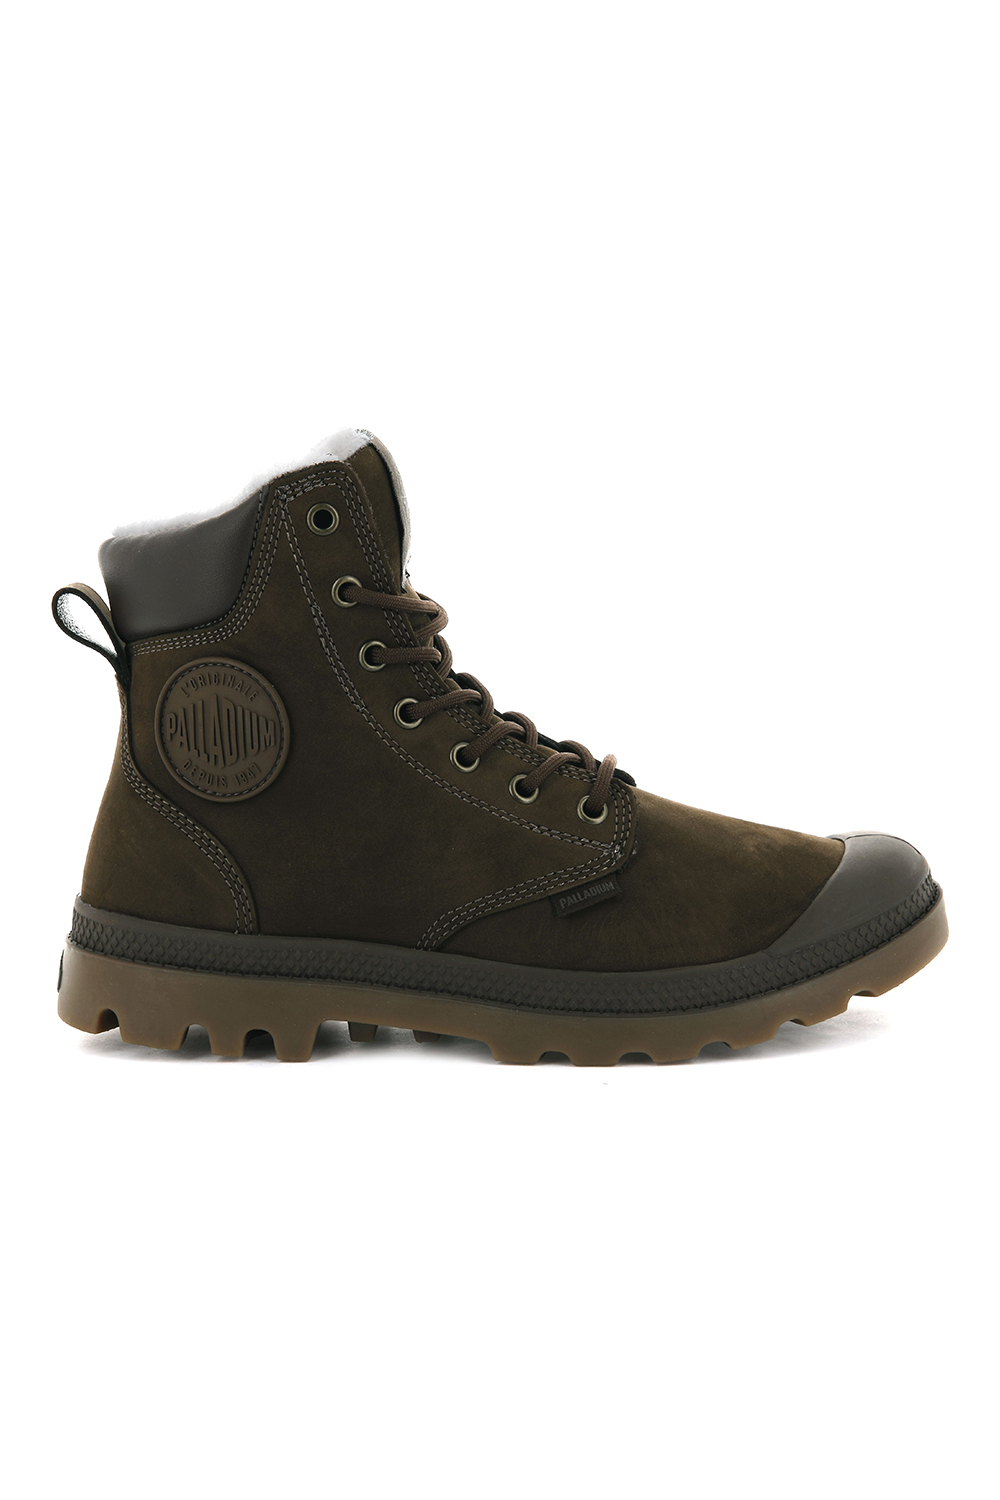 thumbnail 33 - Palladium Mens Pampa Sport Cuff Waterproof Suede Leather Shoe Wool Lined Boots